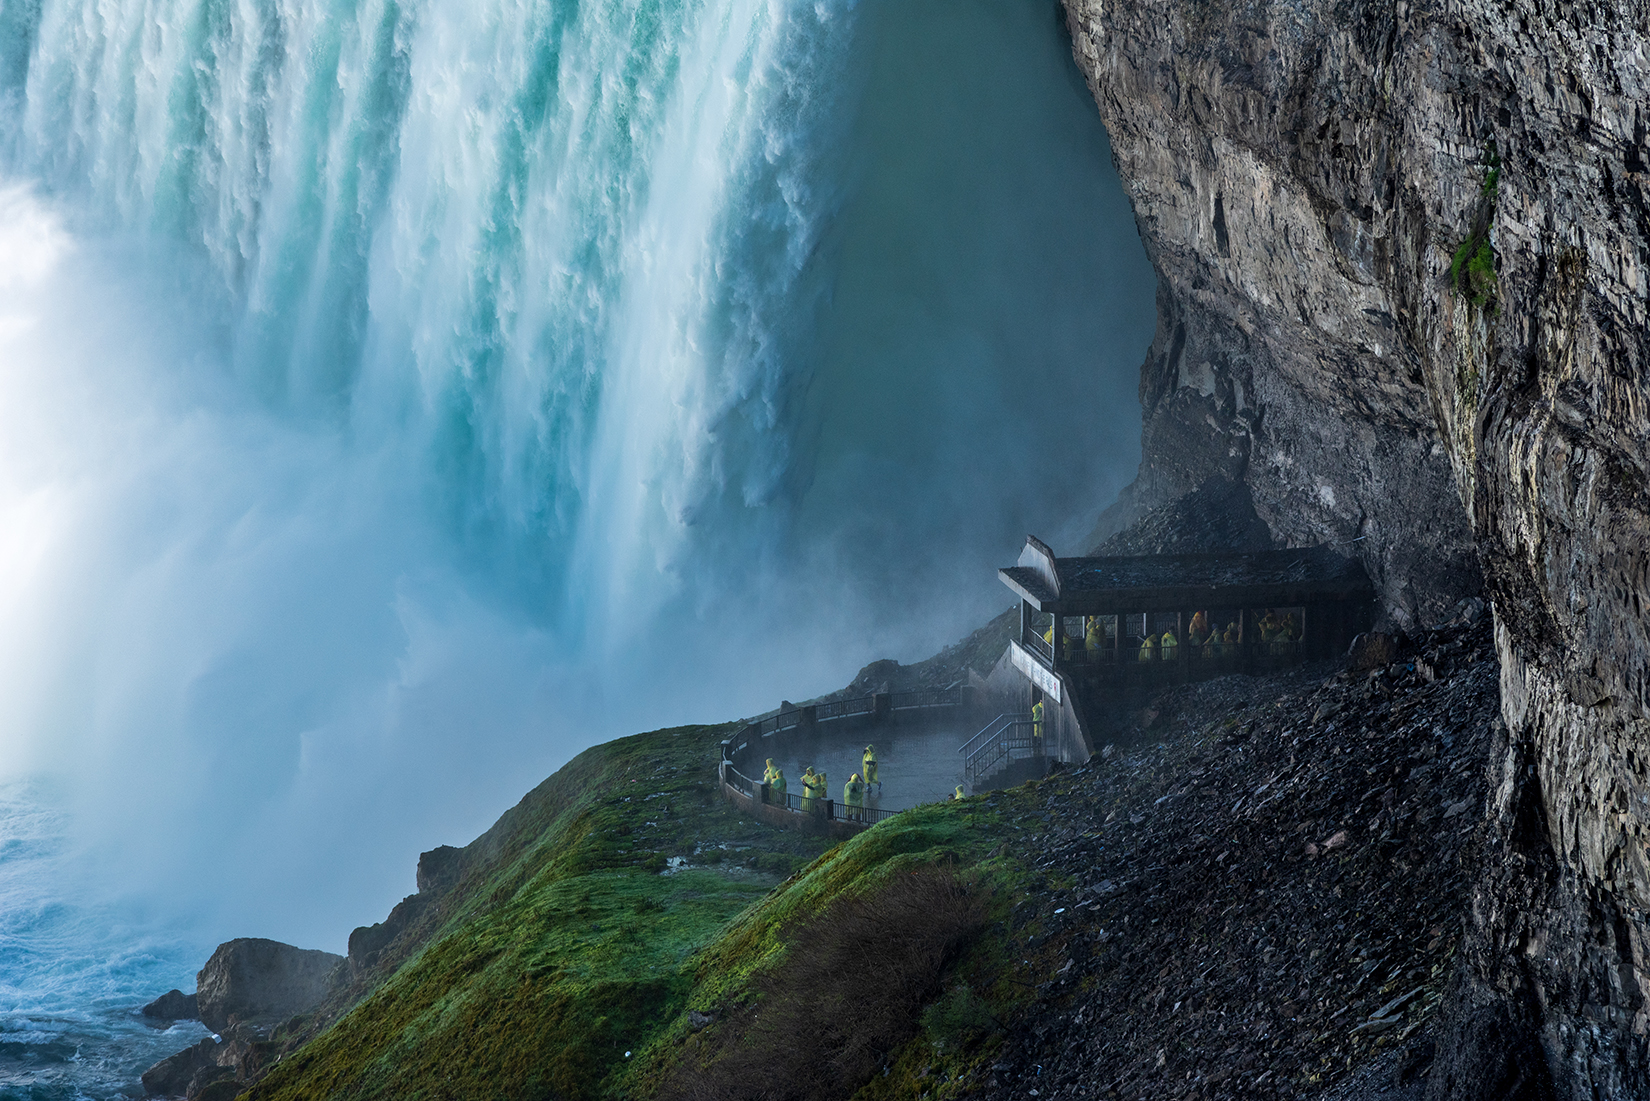 Journey Behind the Falls observation platform and series of tunnels near the bottom of the Horseshoe Falls